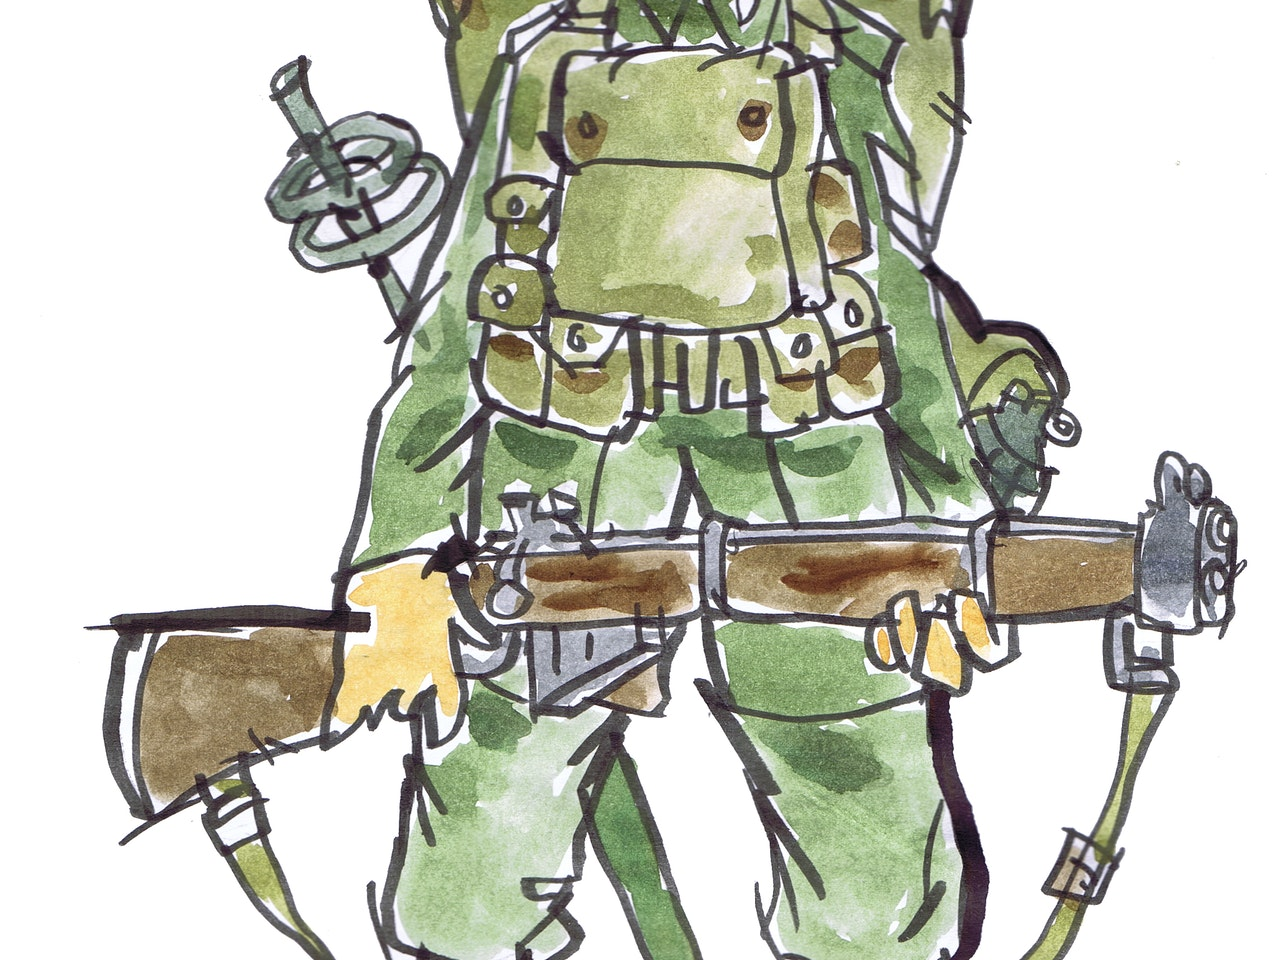 ww1 tommy soldier great war watercolour painting pen and ink coloured pencil Book cover childrens illustration animation funny  humorous comical colourful graphic novel comic strip cartoon comic book educational publishing historical history